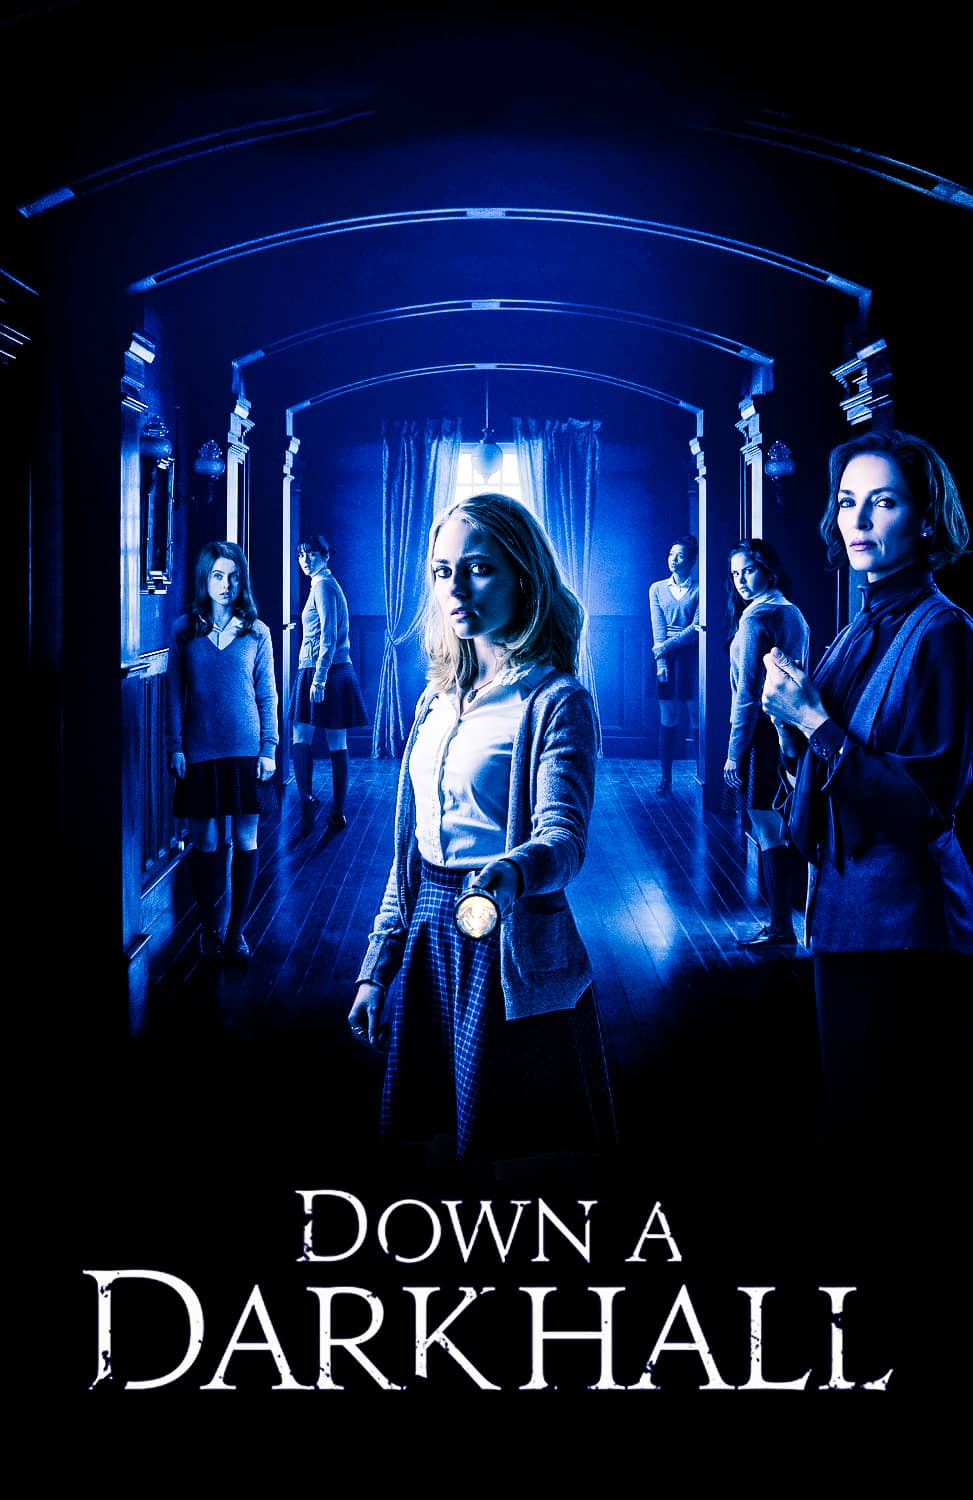 فيلم Down a Dark Hall 2018 مترجم